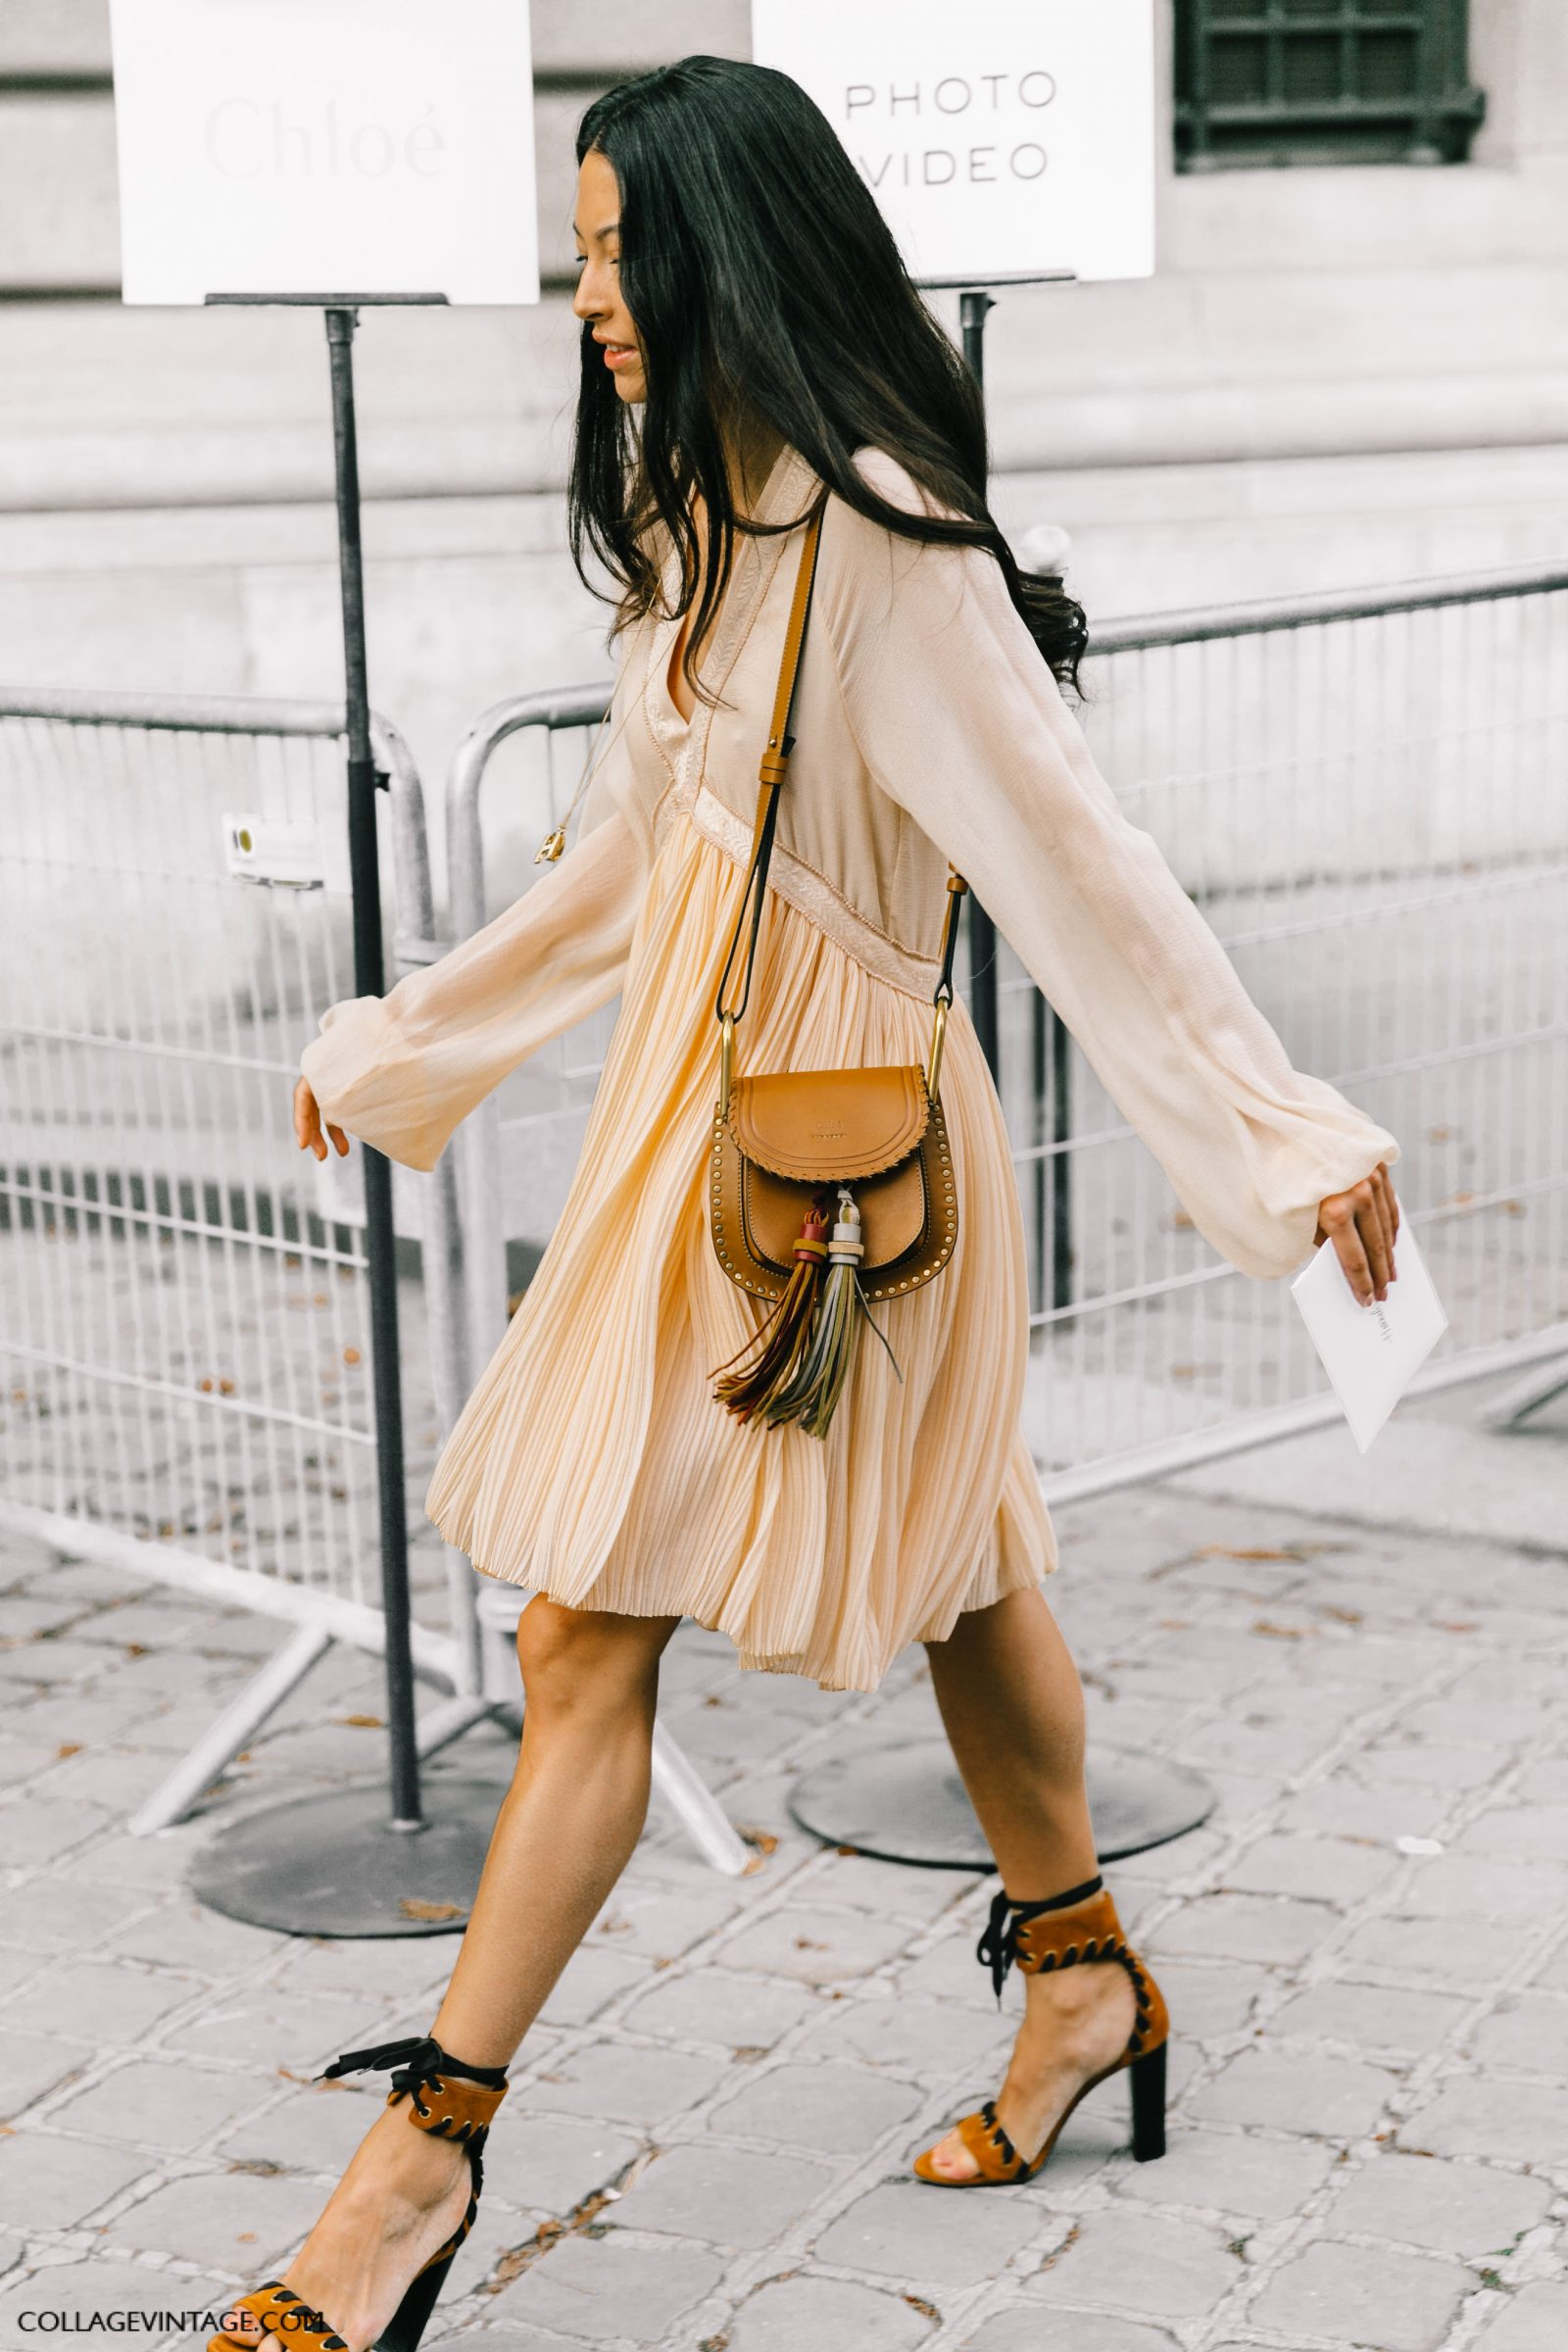 pfw-paris_fashion_week_ss17-street_style-outfits-collage_vintage-chloe-carven-balmain-barbara_bui-13